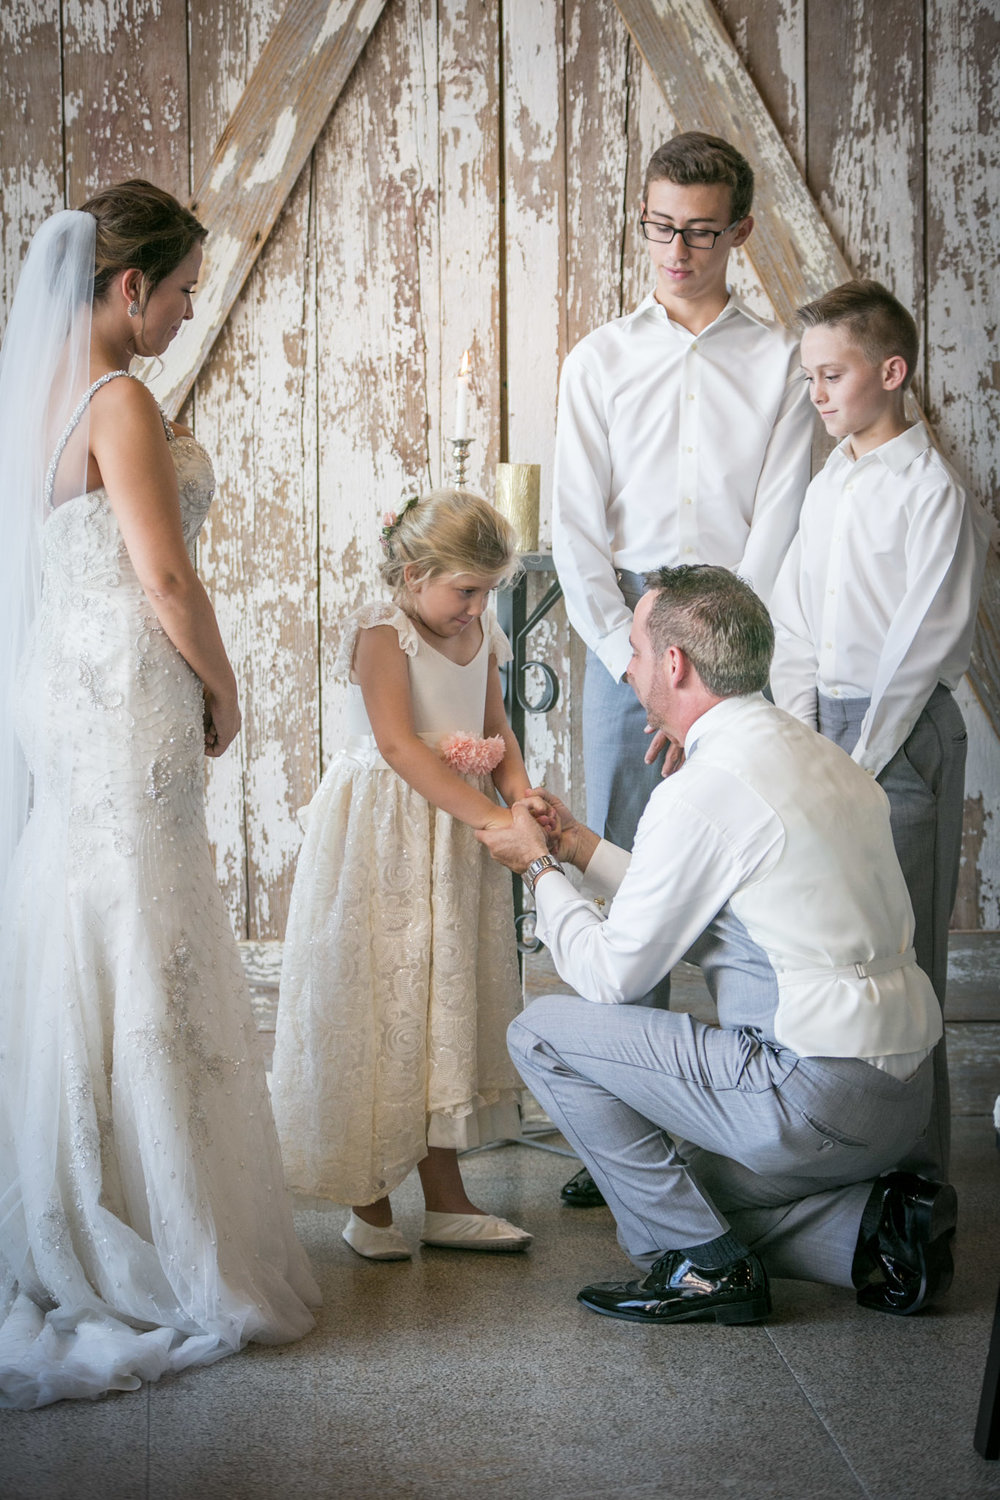 8. Vow of Parenthood - Also known as a Family Unity Ceremony, this is a special way to bring together your entire family and vow to love and support one another until the end of time.